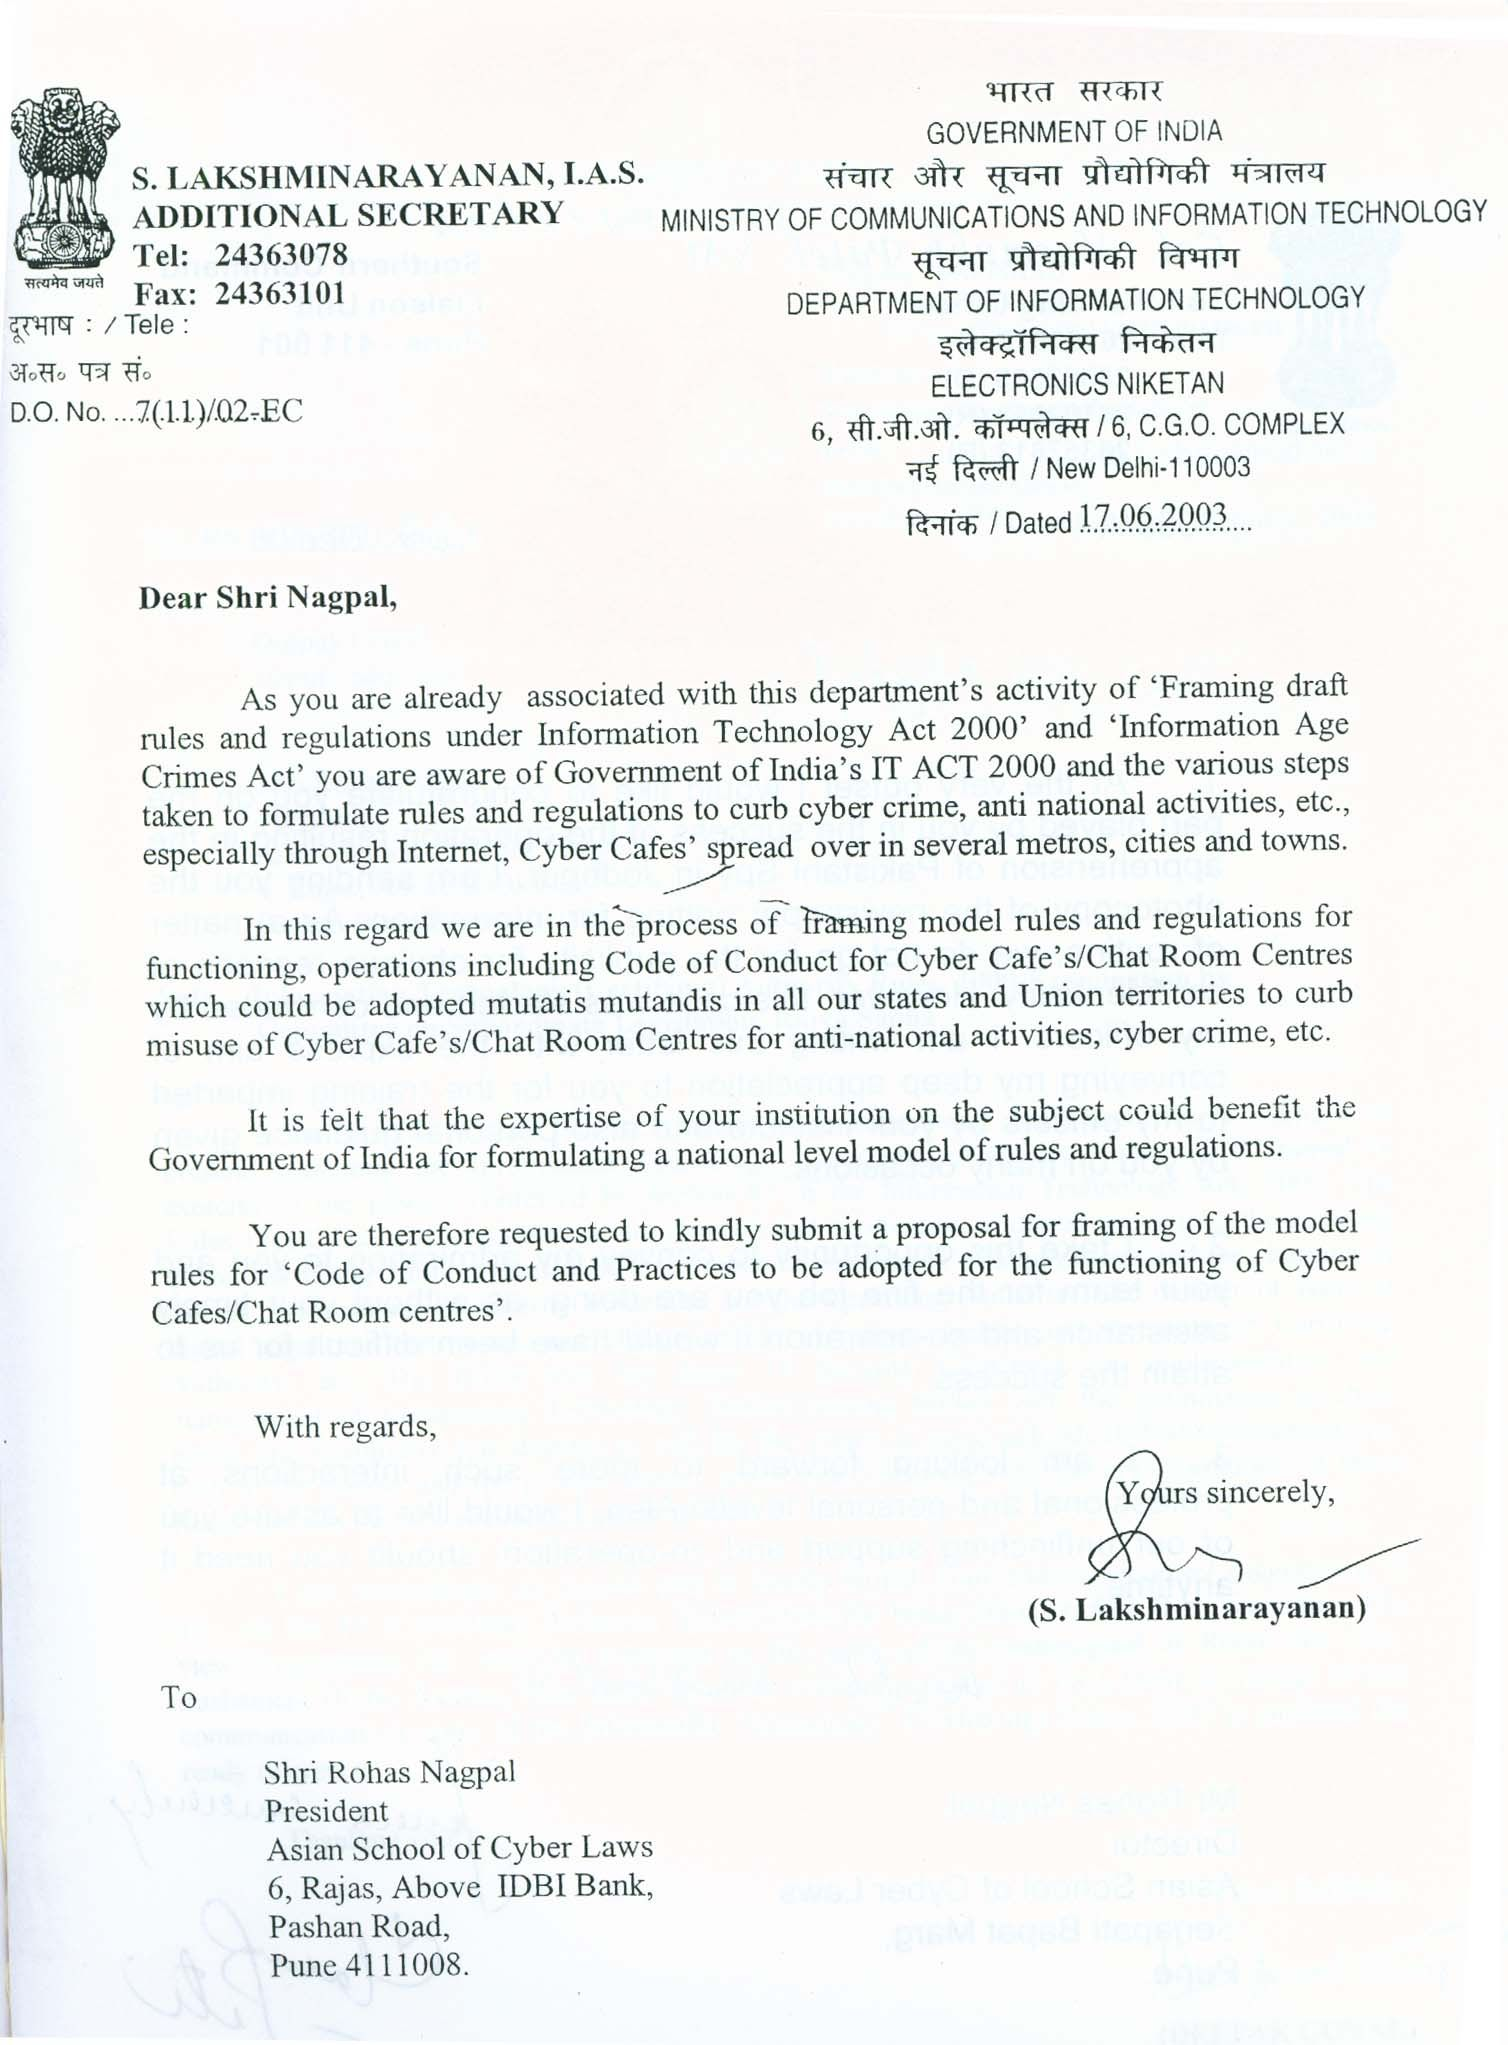 Letter From Additional Secretary Ministry Of